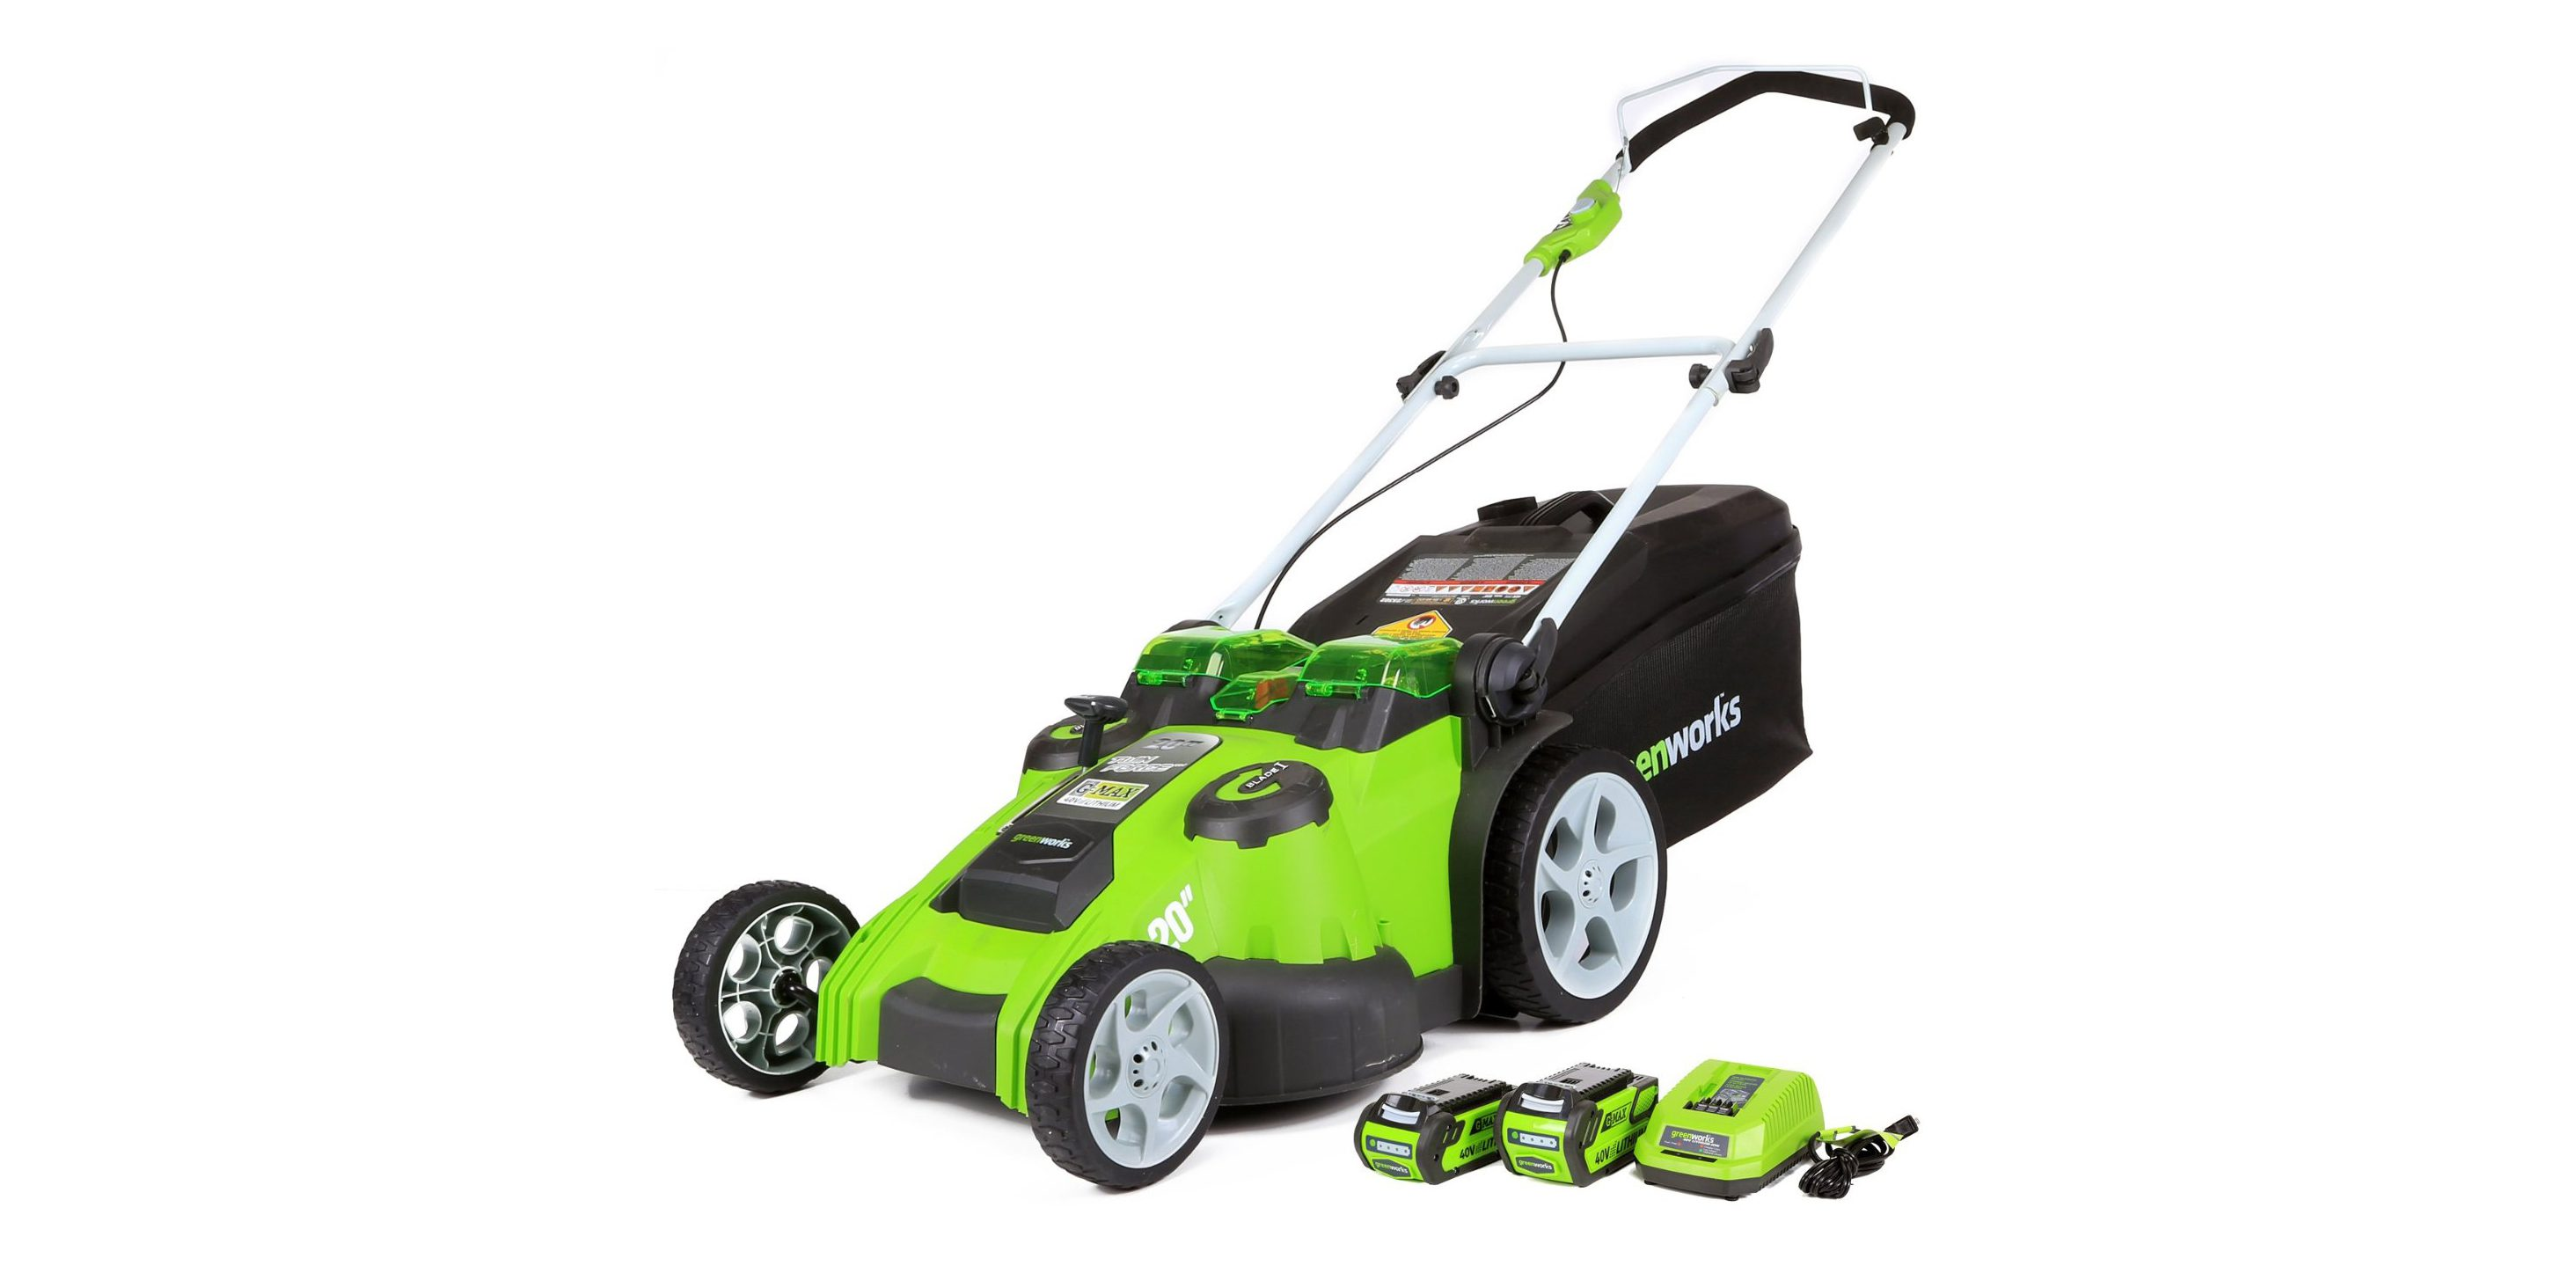 Electric Lawn Mower Sale Green Deals Greenworks G Max 40v Electric Lawn Mower Is An